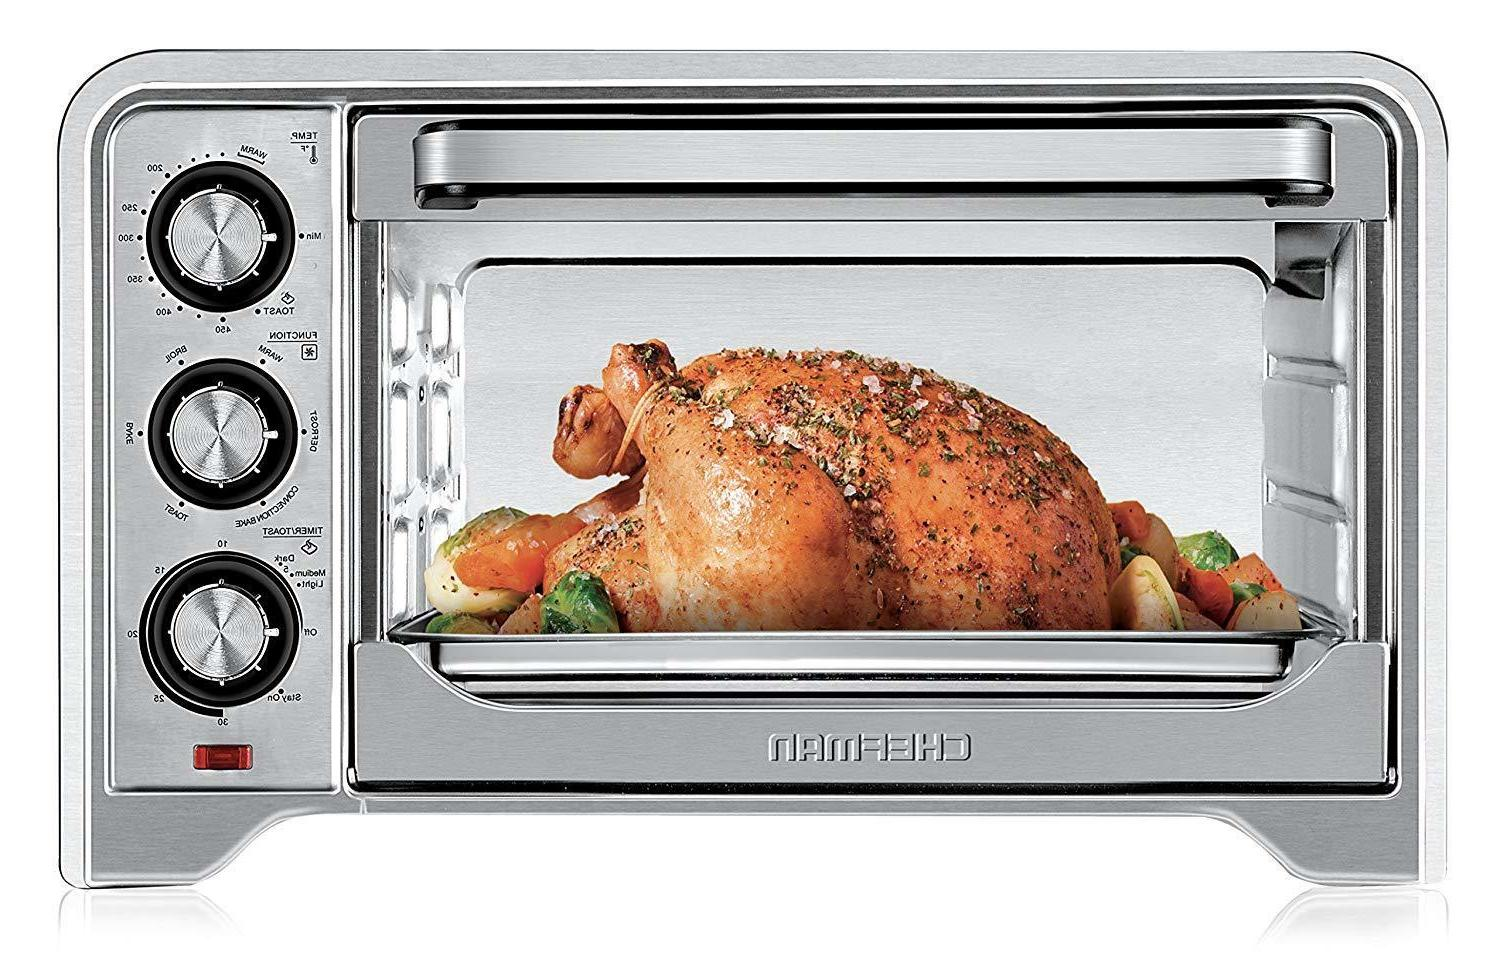 toaster convection oven countertop x large 6